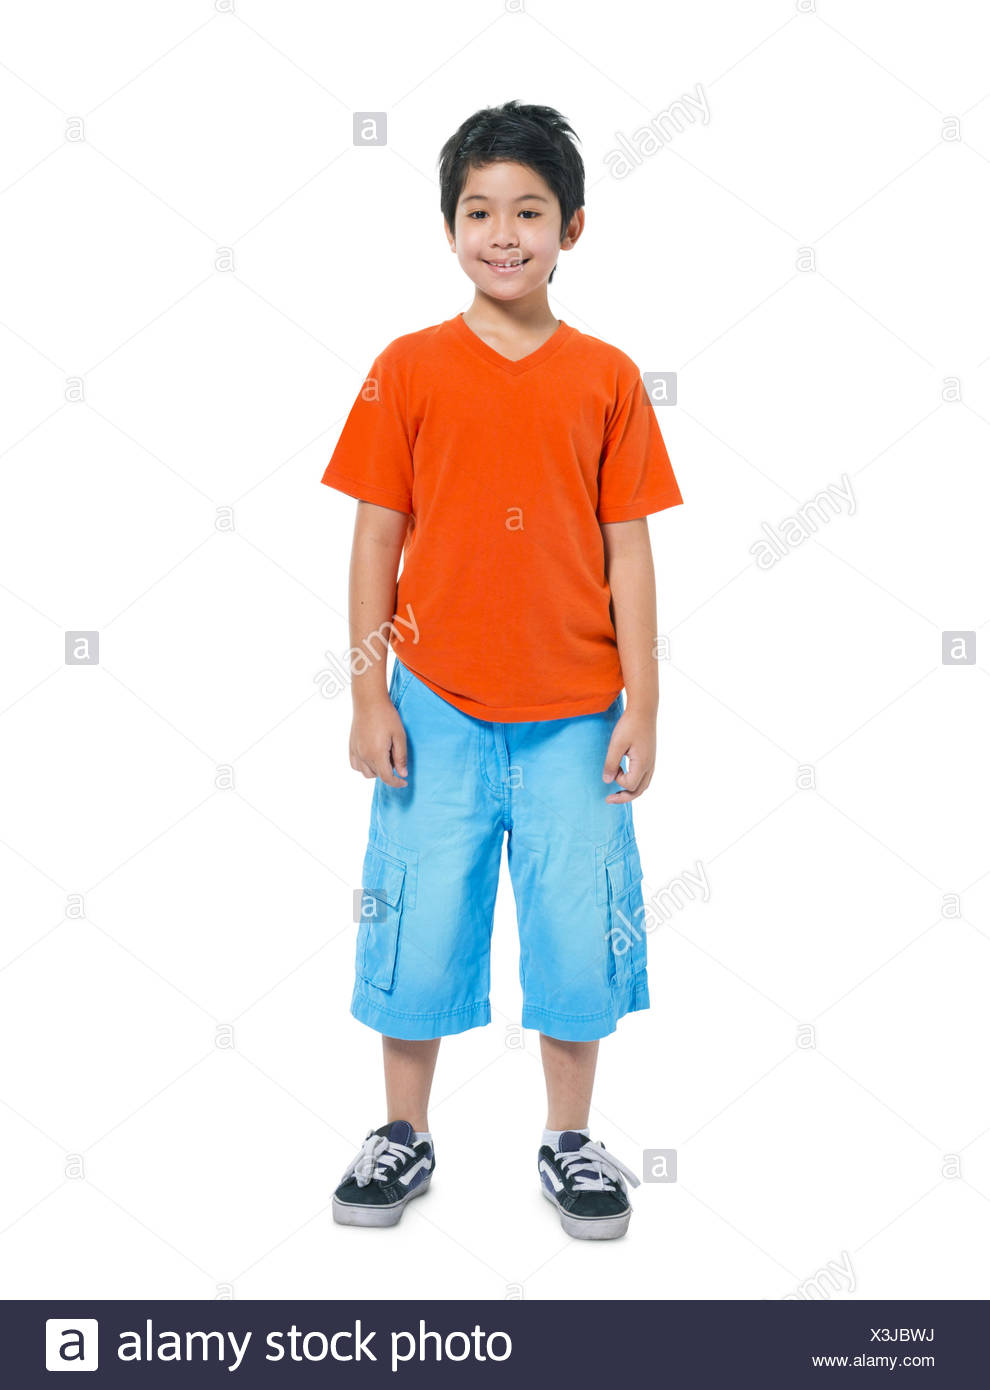 One Little Boy - Stock Image